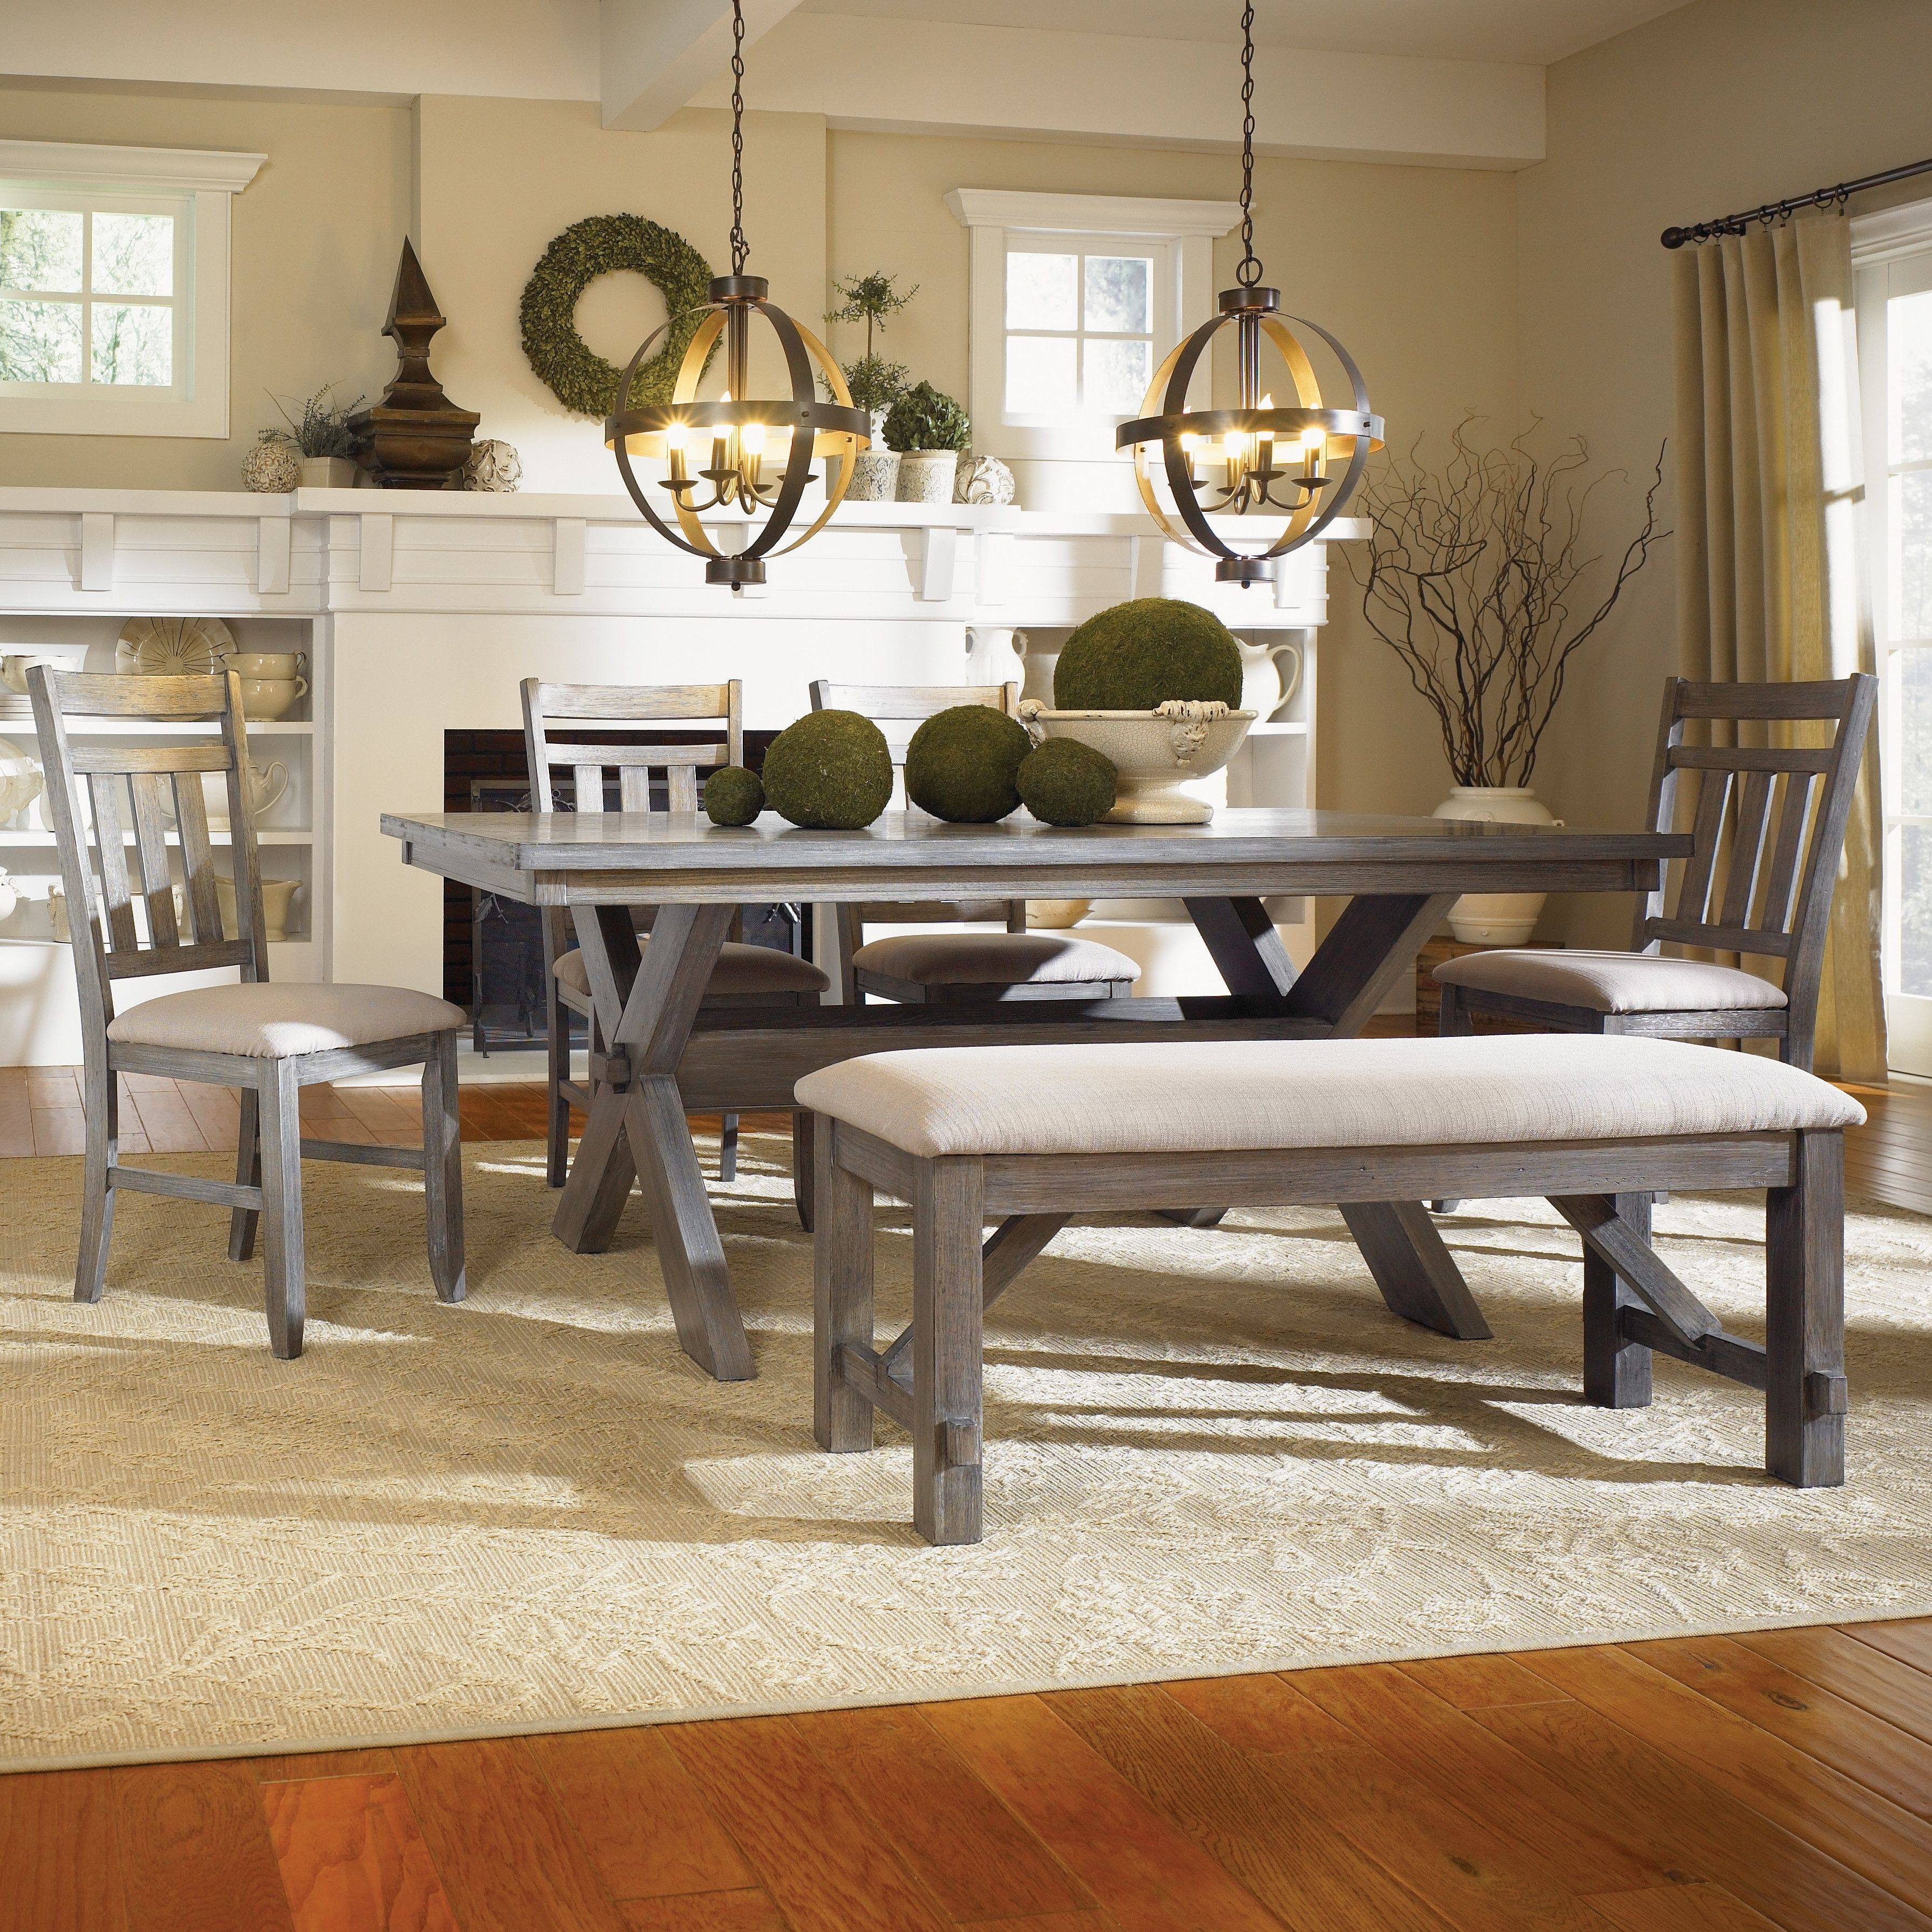 chairs market furniture of rustic set xxx room sets world table do category side unique dining leona wood bench farmhouse